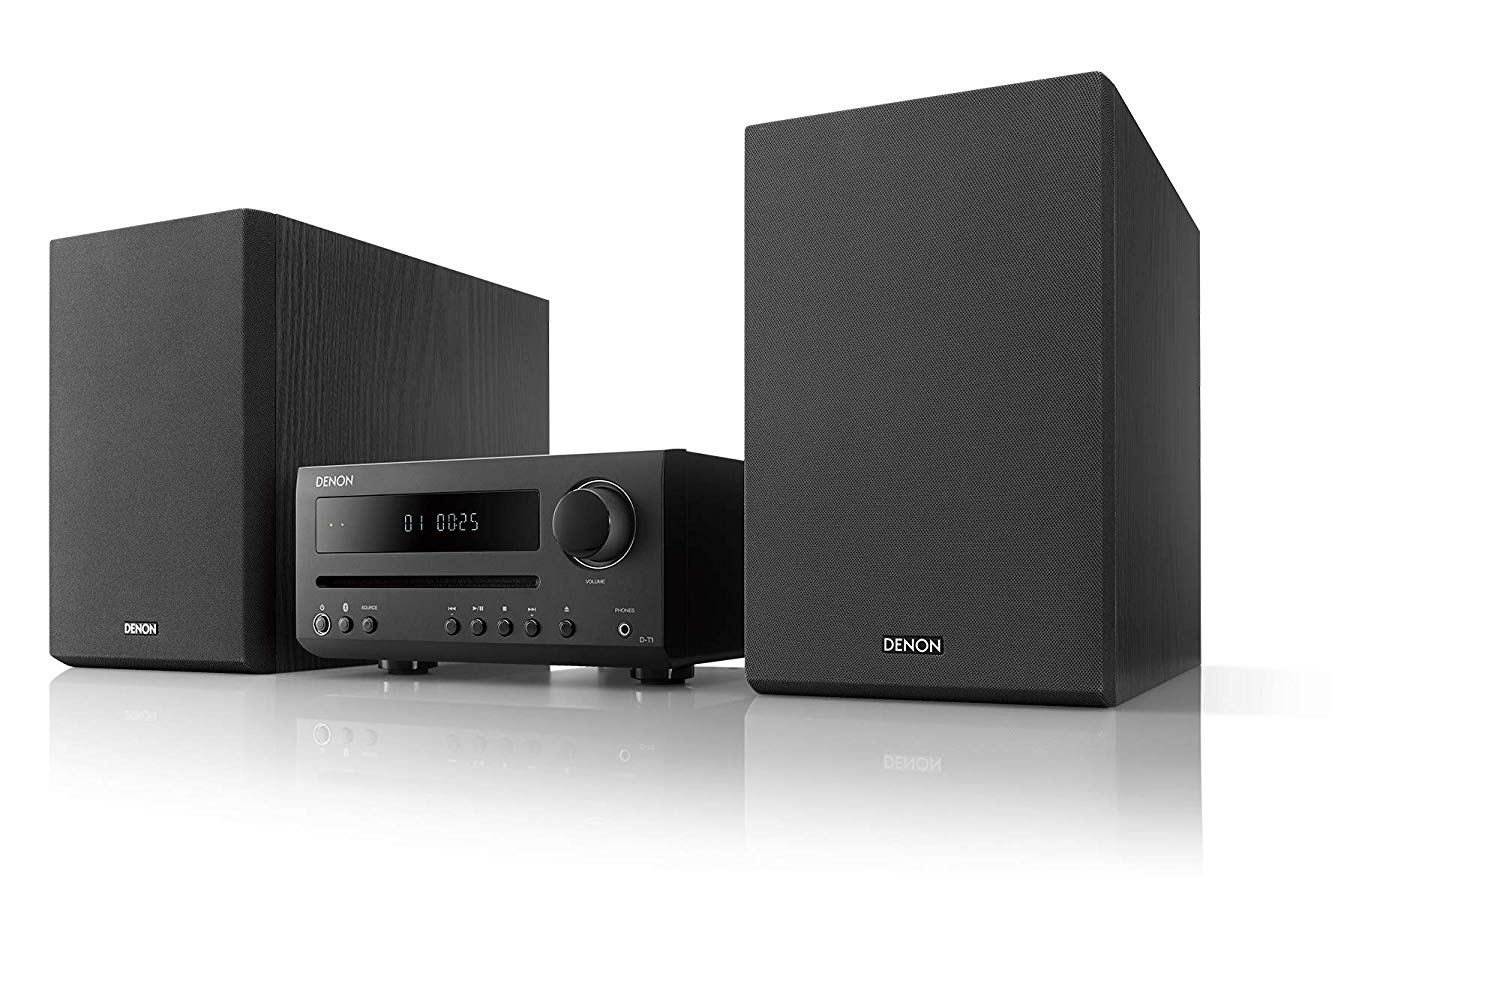 Denon DT1 Hi-Fi Mini System with CD and Bluetooth